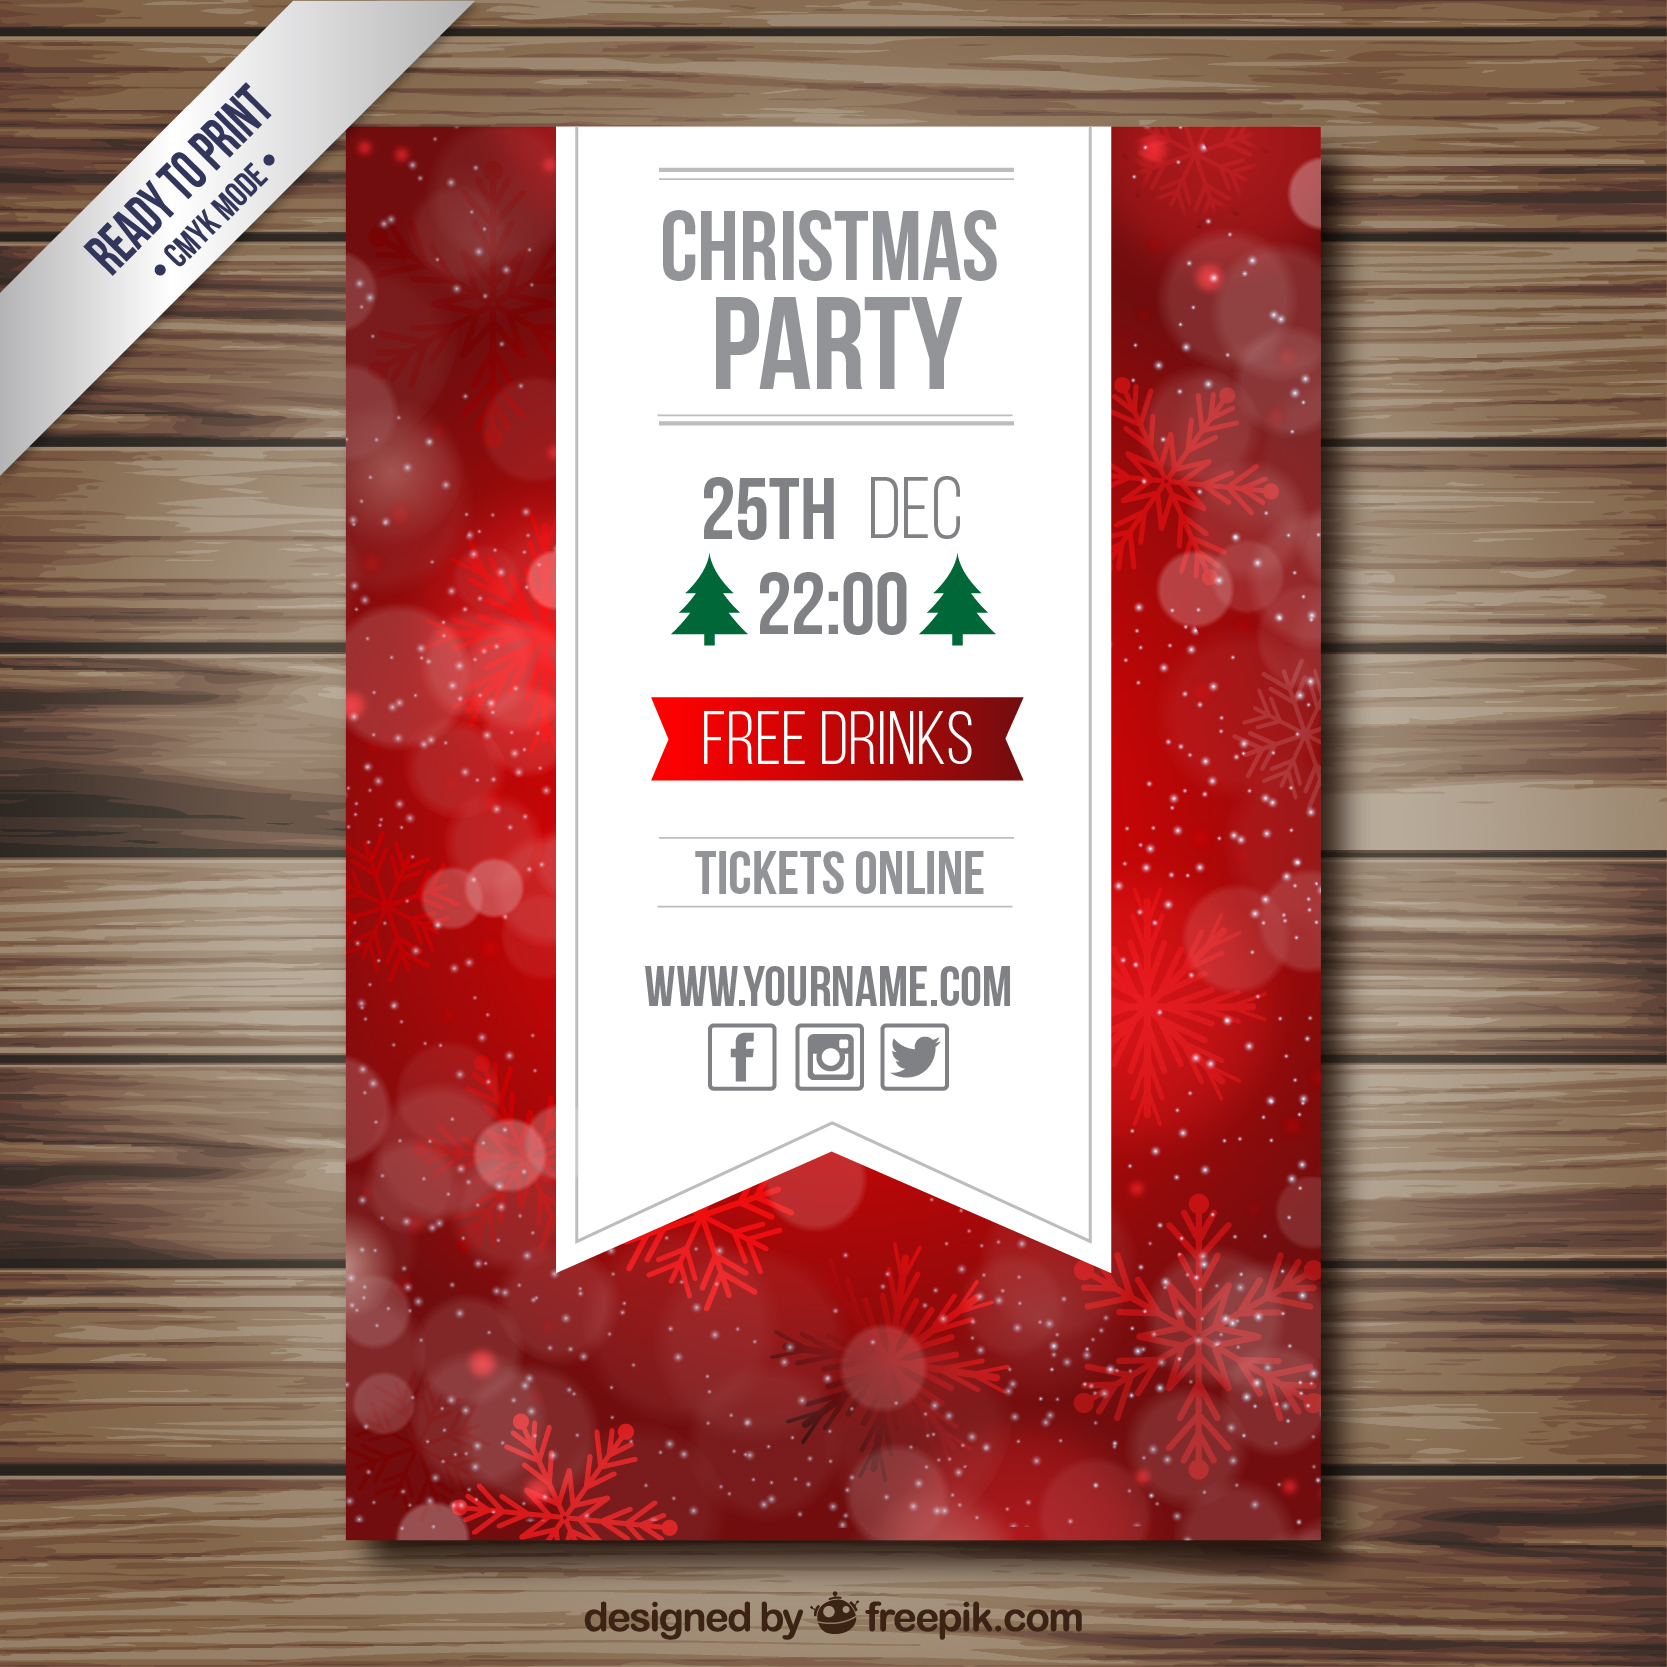 xmas bies 25 best hi quality christmas graphic vectors 2015 red christmas party flyer